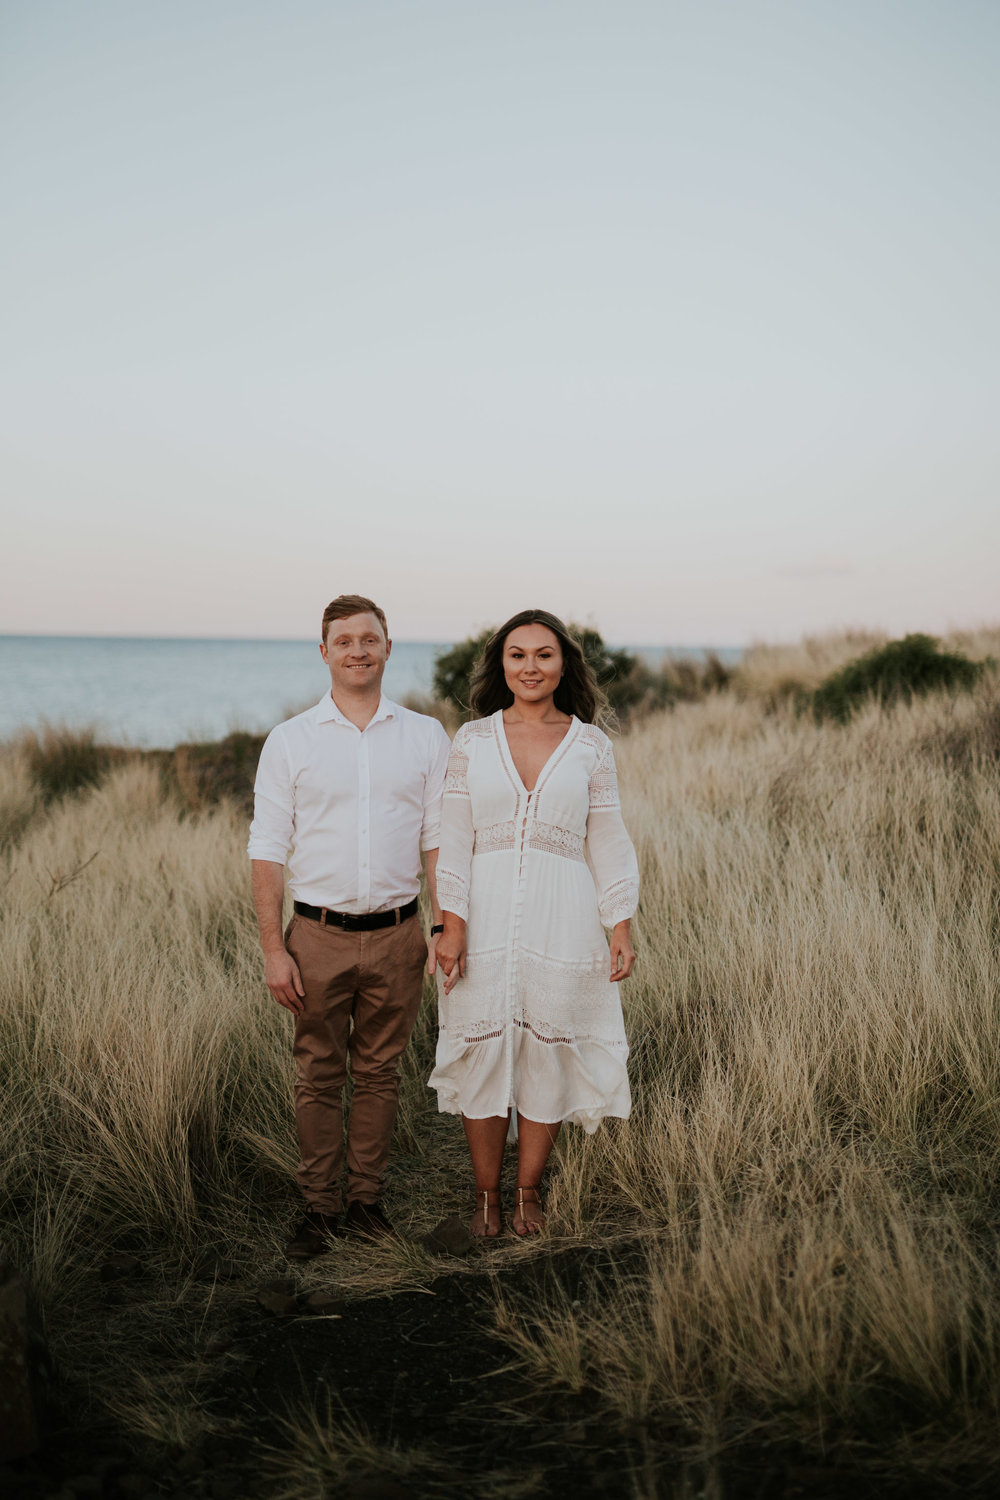 shanae+grant+Kiama+Engagement+Session-70.jpg